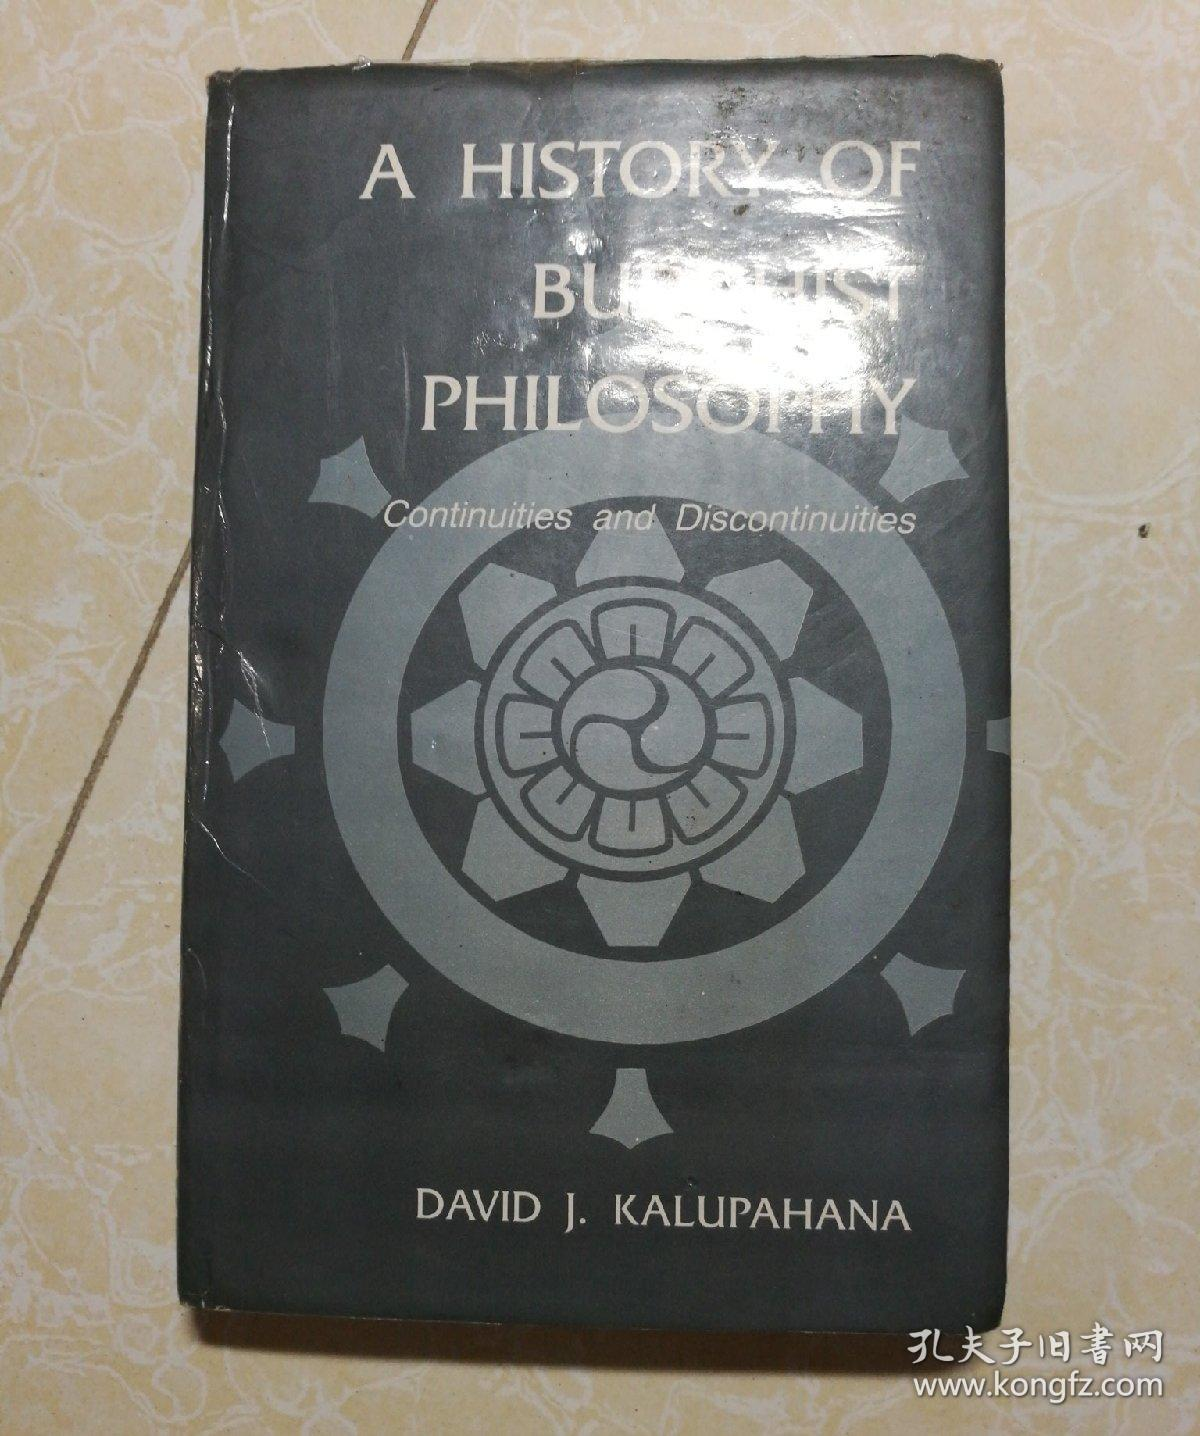 A HIRTORY OF SUDDHIST PHILOSOPHY (苏丹哲学史).